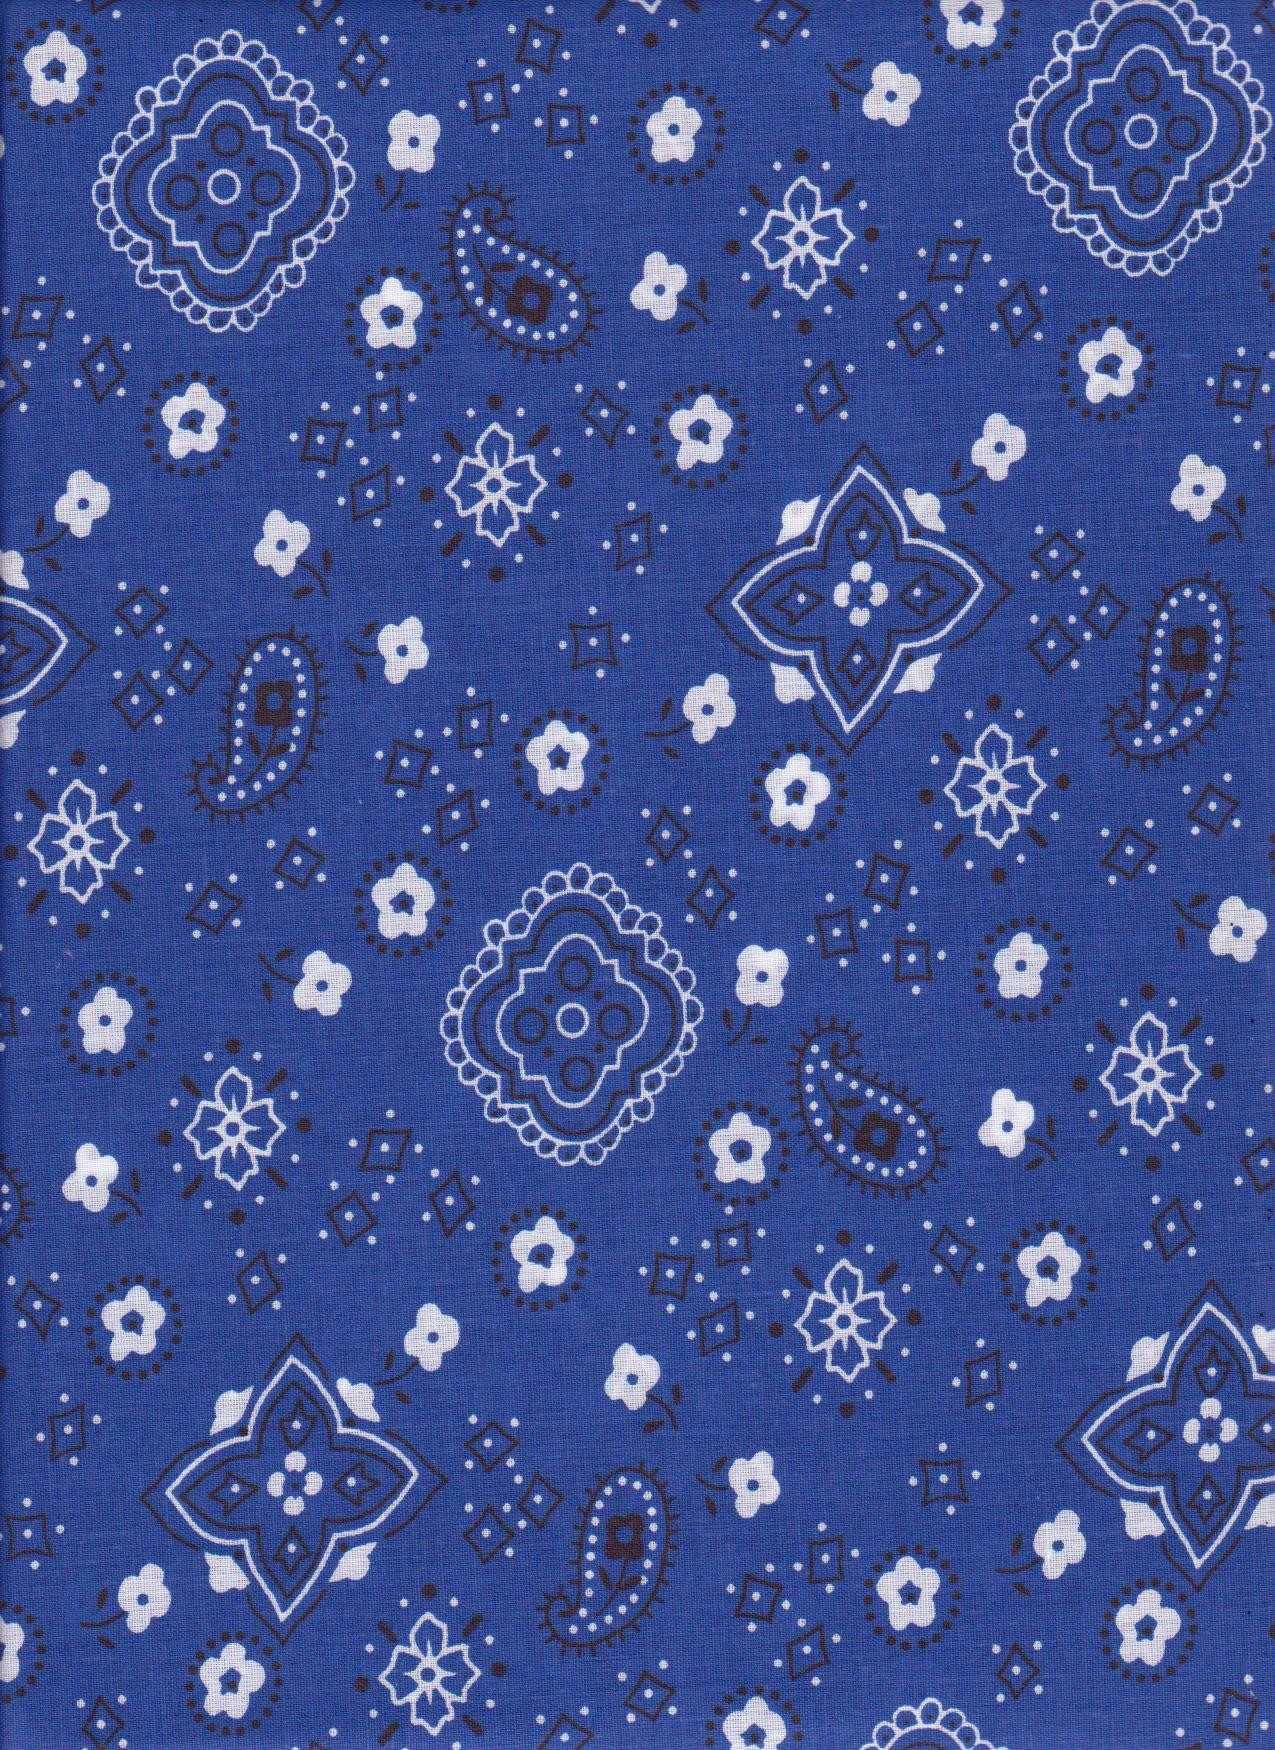 Crip Bandana Wallpaper : bandana, wallpaper, Bandana, Wallpapers, Backgrounds, WallpaperAccess